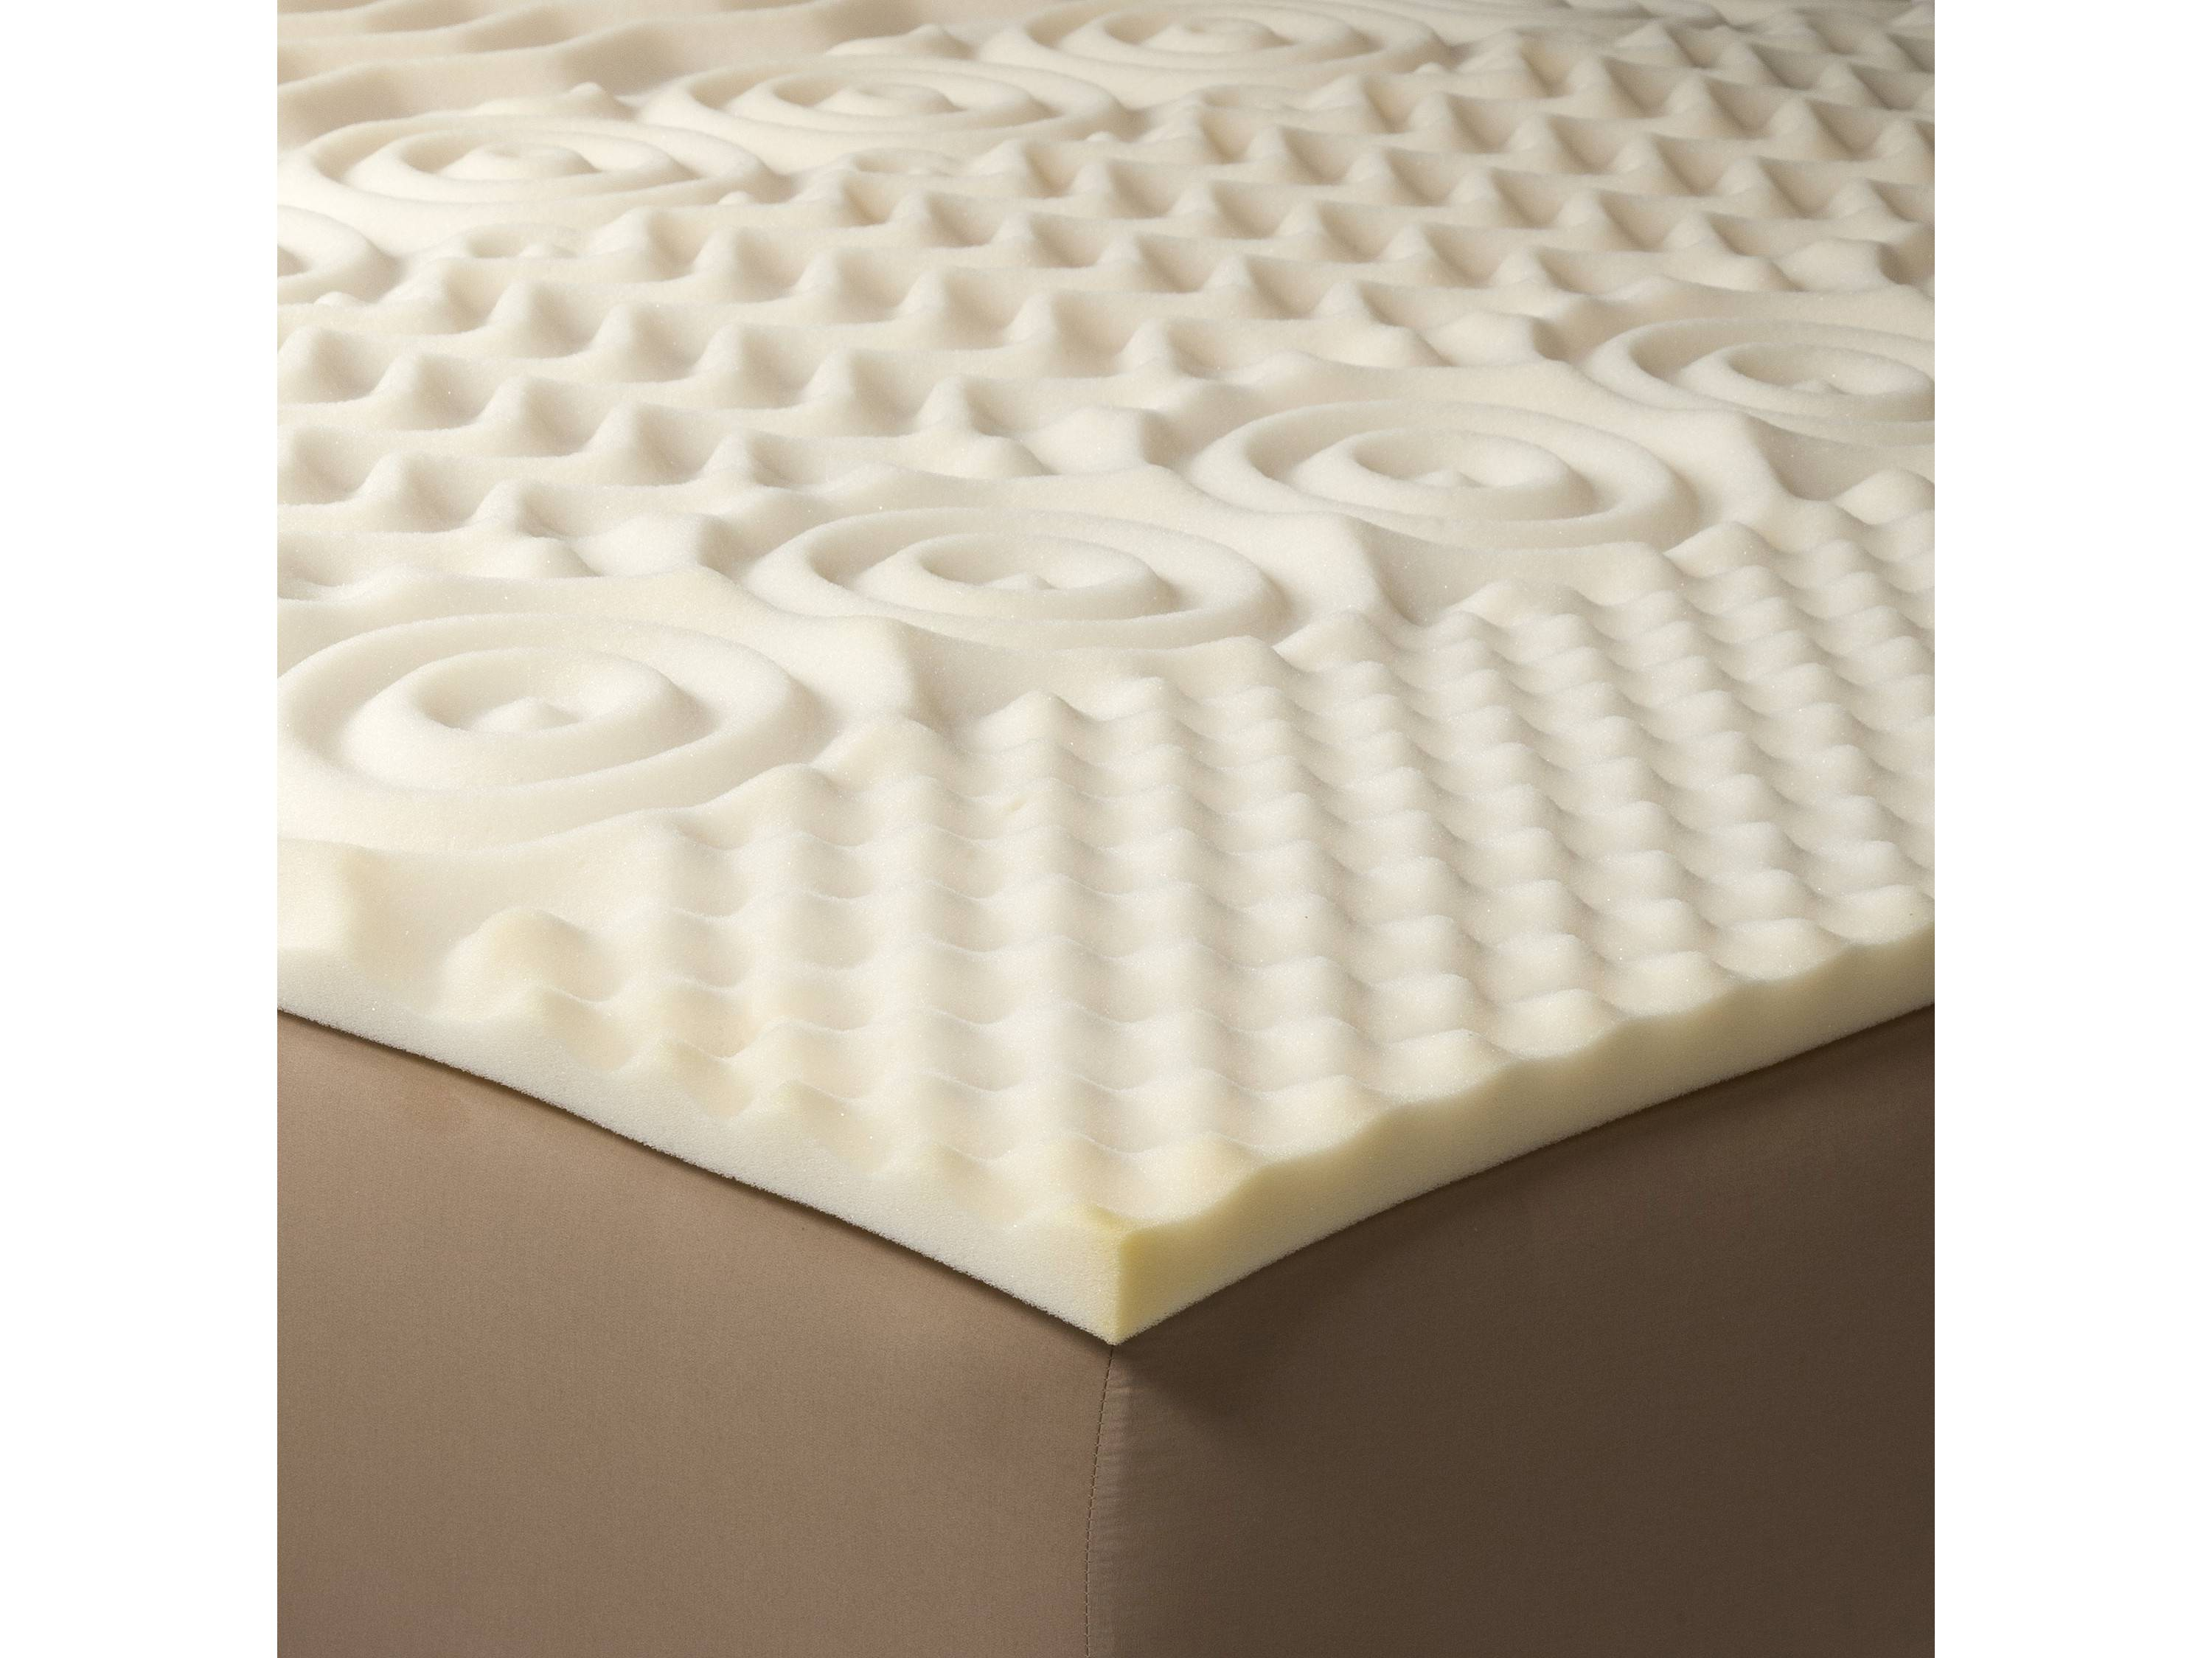 outlast olympic cool memory with cover pad foam mattress queen reviews iso